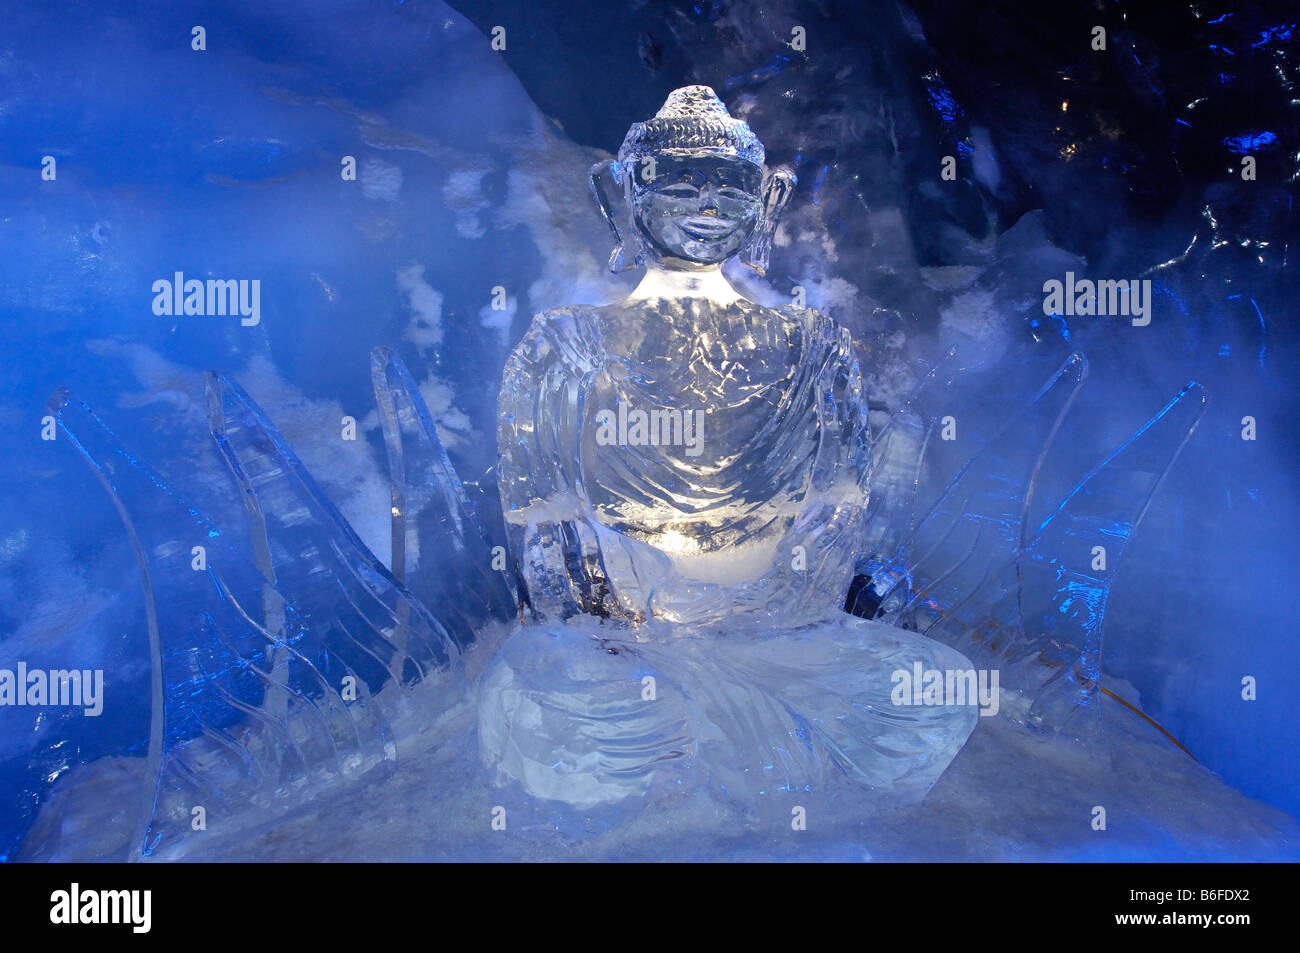 ice buddha statue in an ice cave in the gletscherpalast or. Black Bedroom Furniture Sets. Home Design Ideas